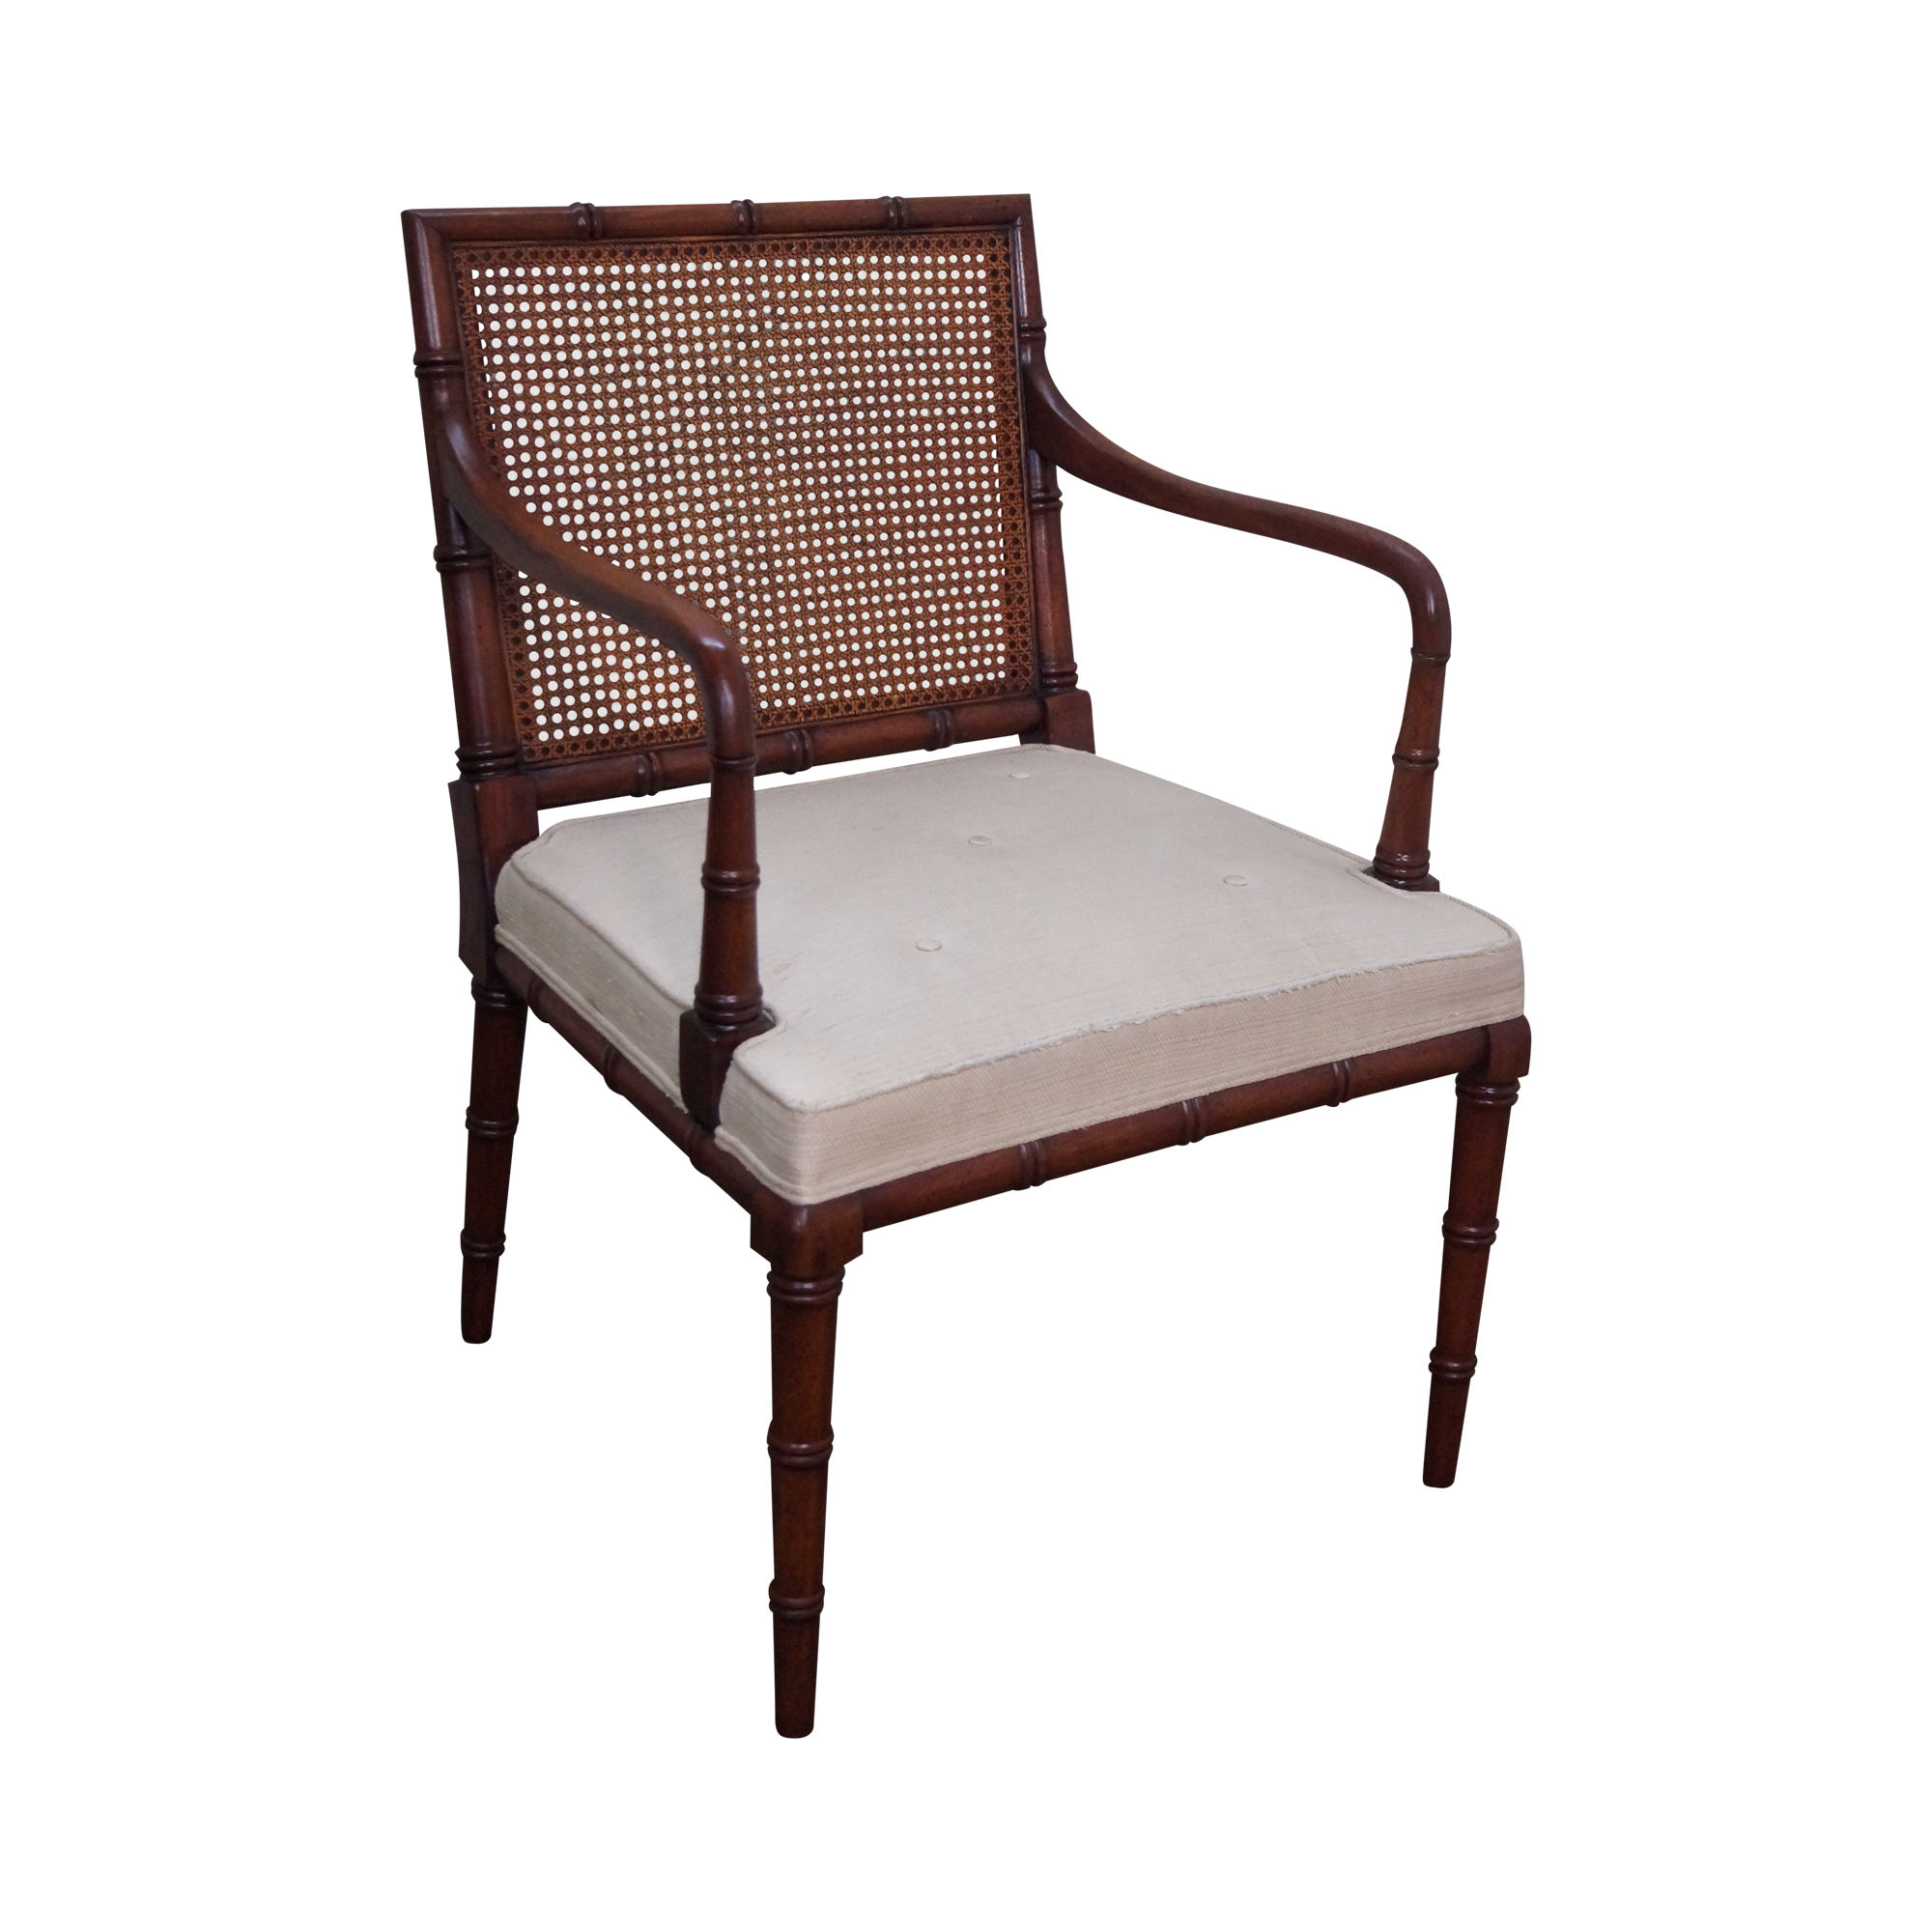 Solid Mahogany Faux Bamboo Cane Back Arm Chair Chairish